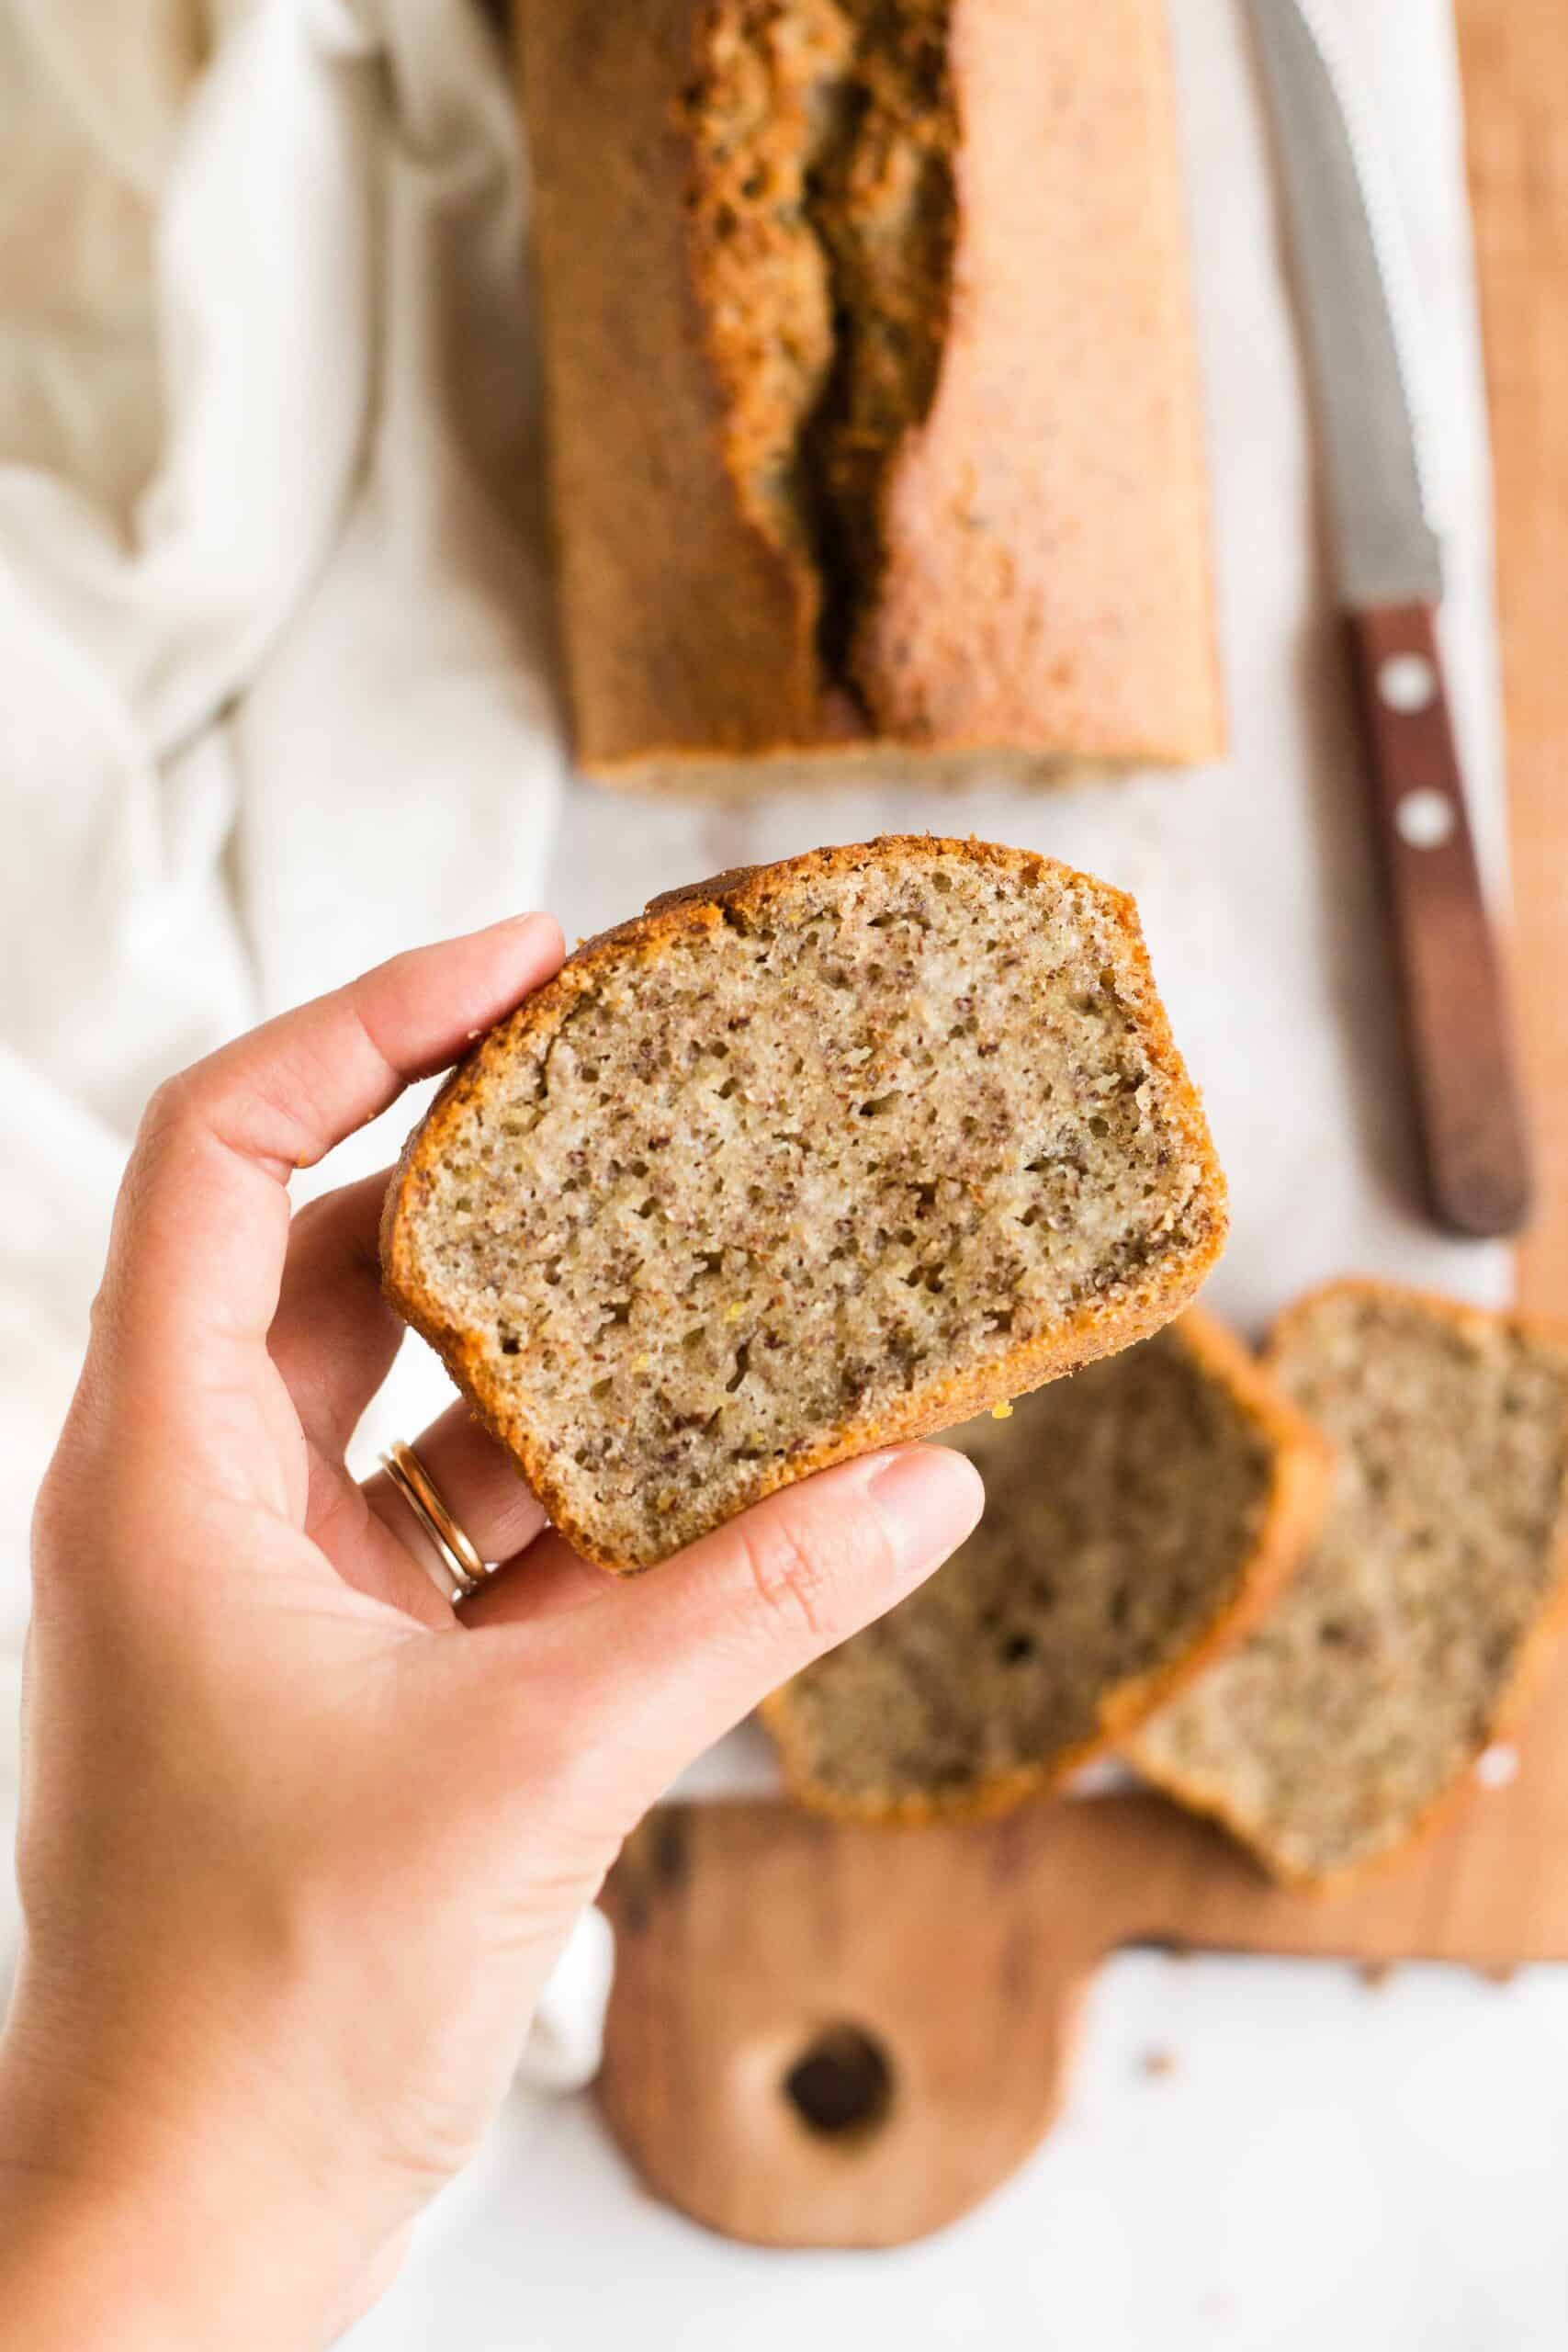 Hand holding up a slice of flaxseed bread from a board.